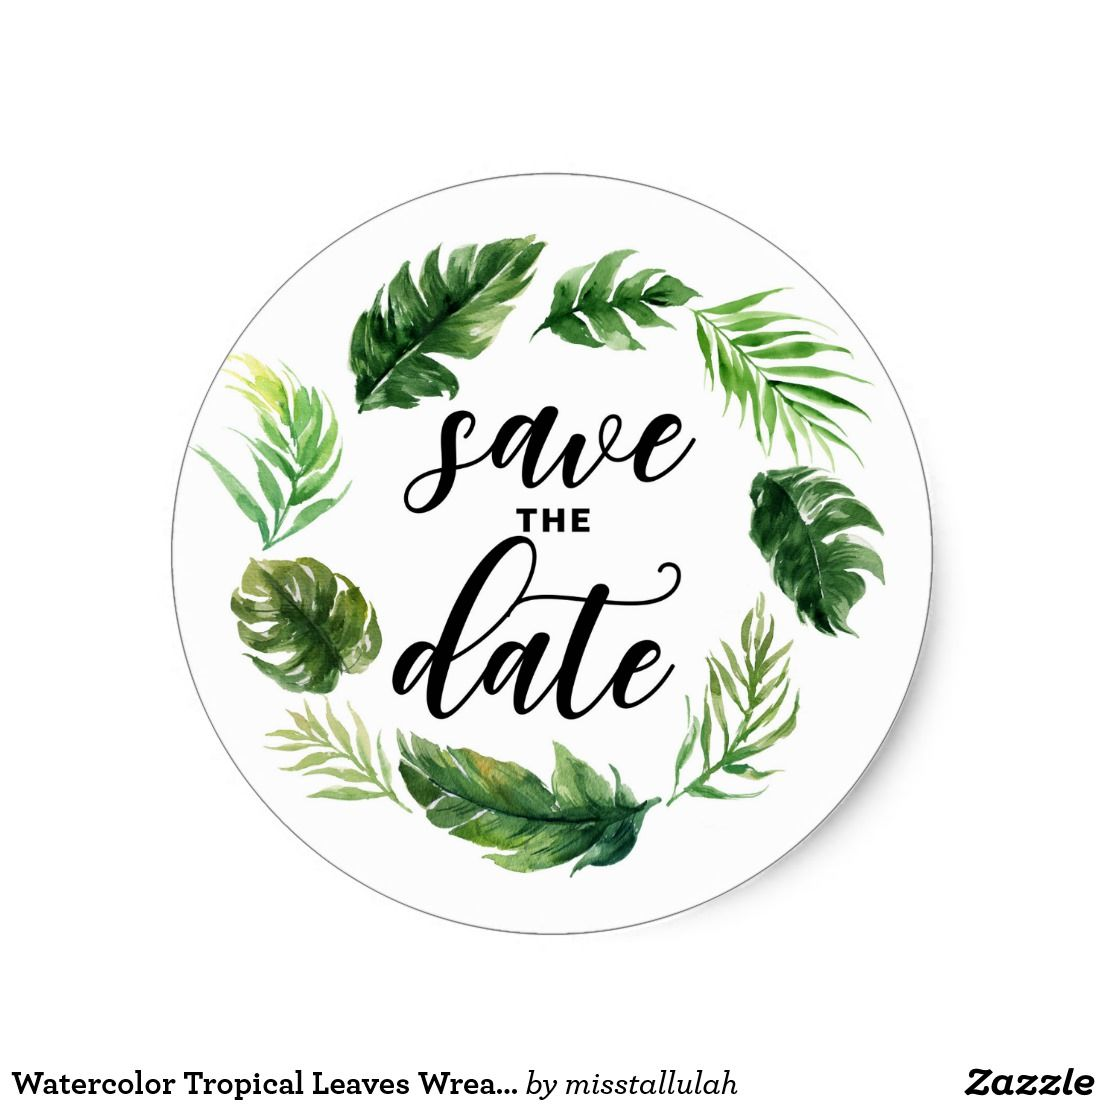 Watercolor Tropical Leaves Wreath Save The Date Classic Round Sticker Zazzle Com Leaf Wreath Monogram Wreath Round Stickers Find more awesome tropical images on picsart. watercolor tropical leaves wreath save